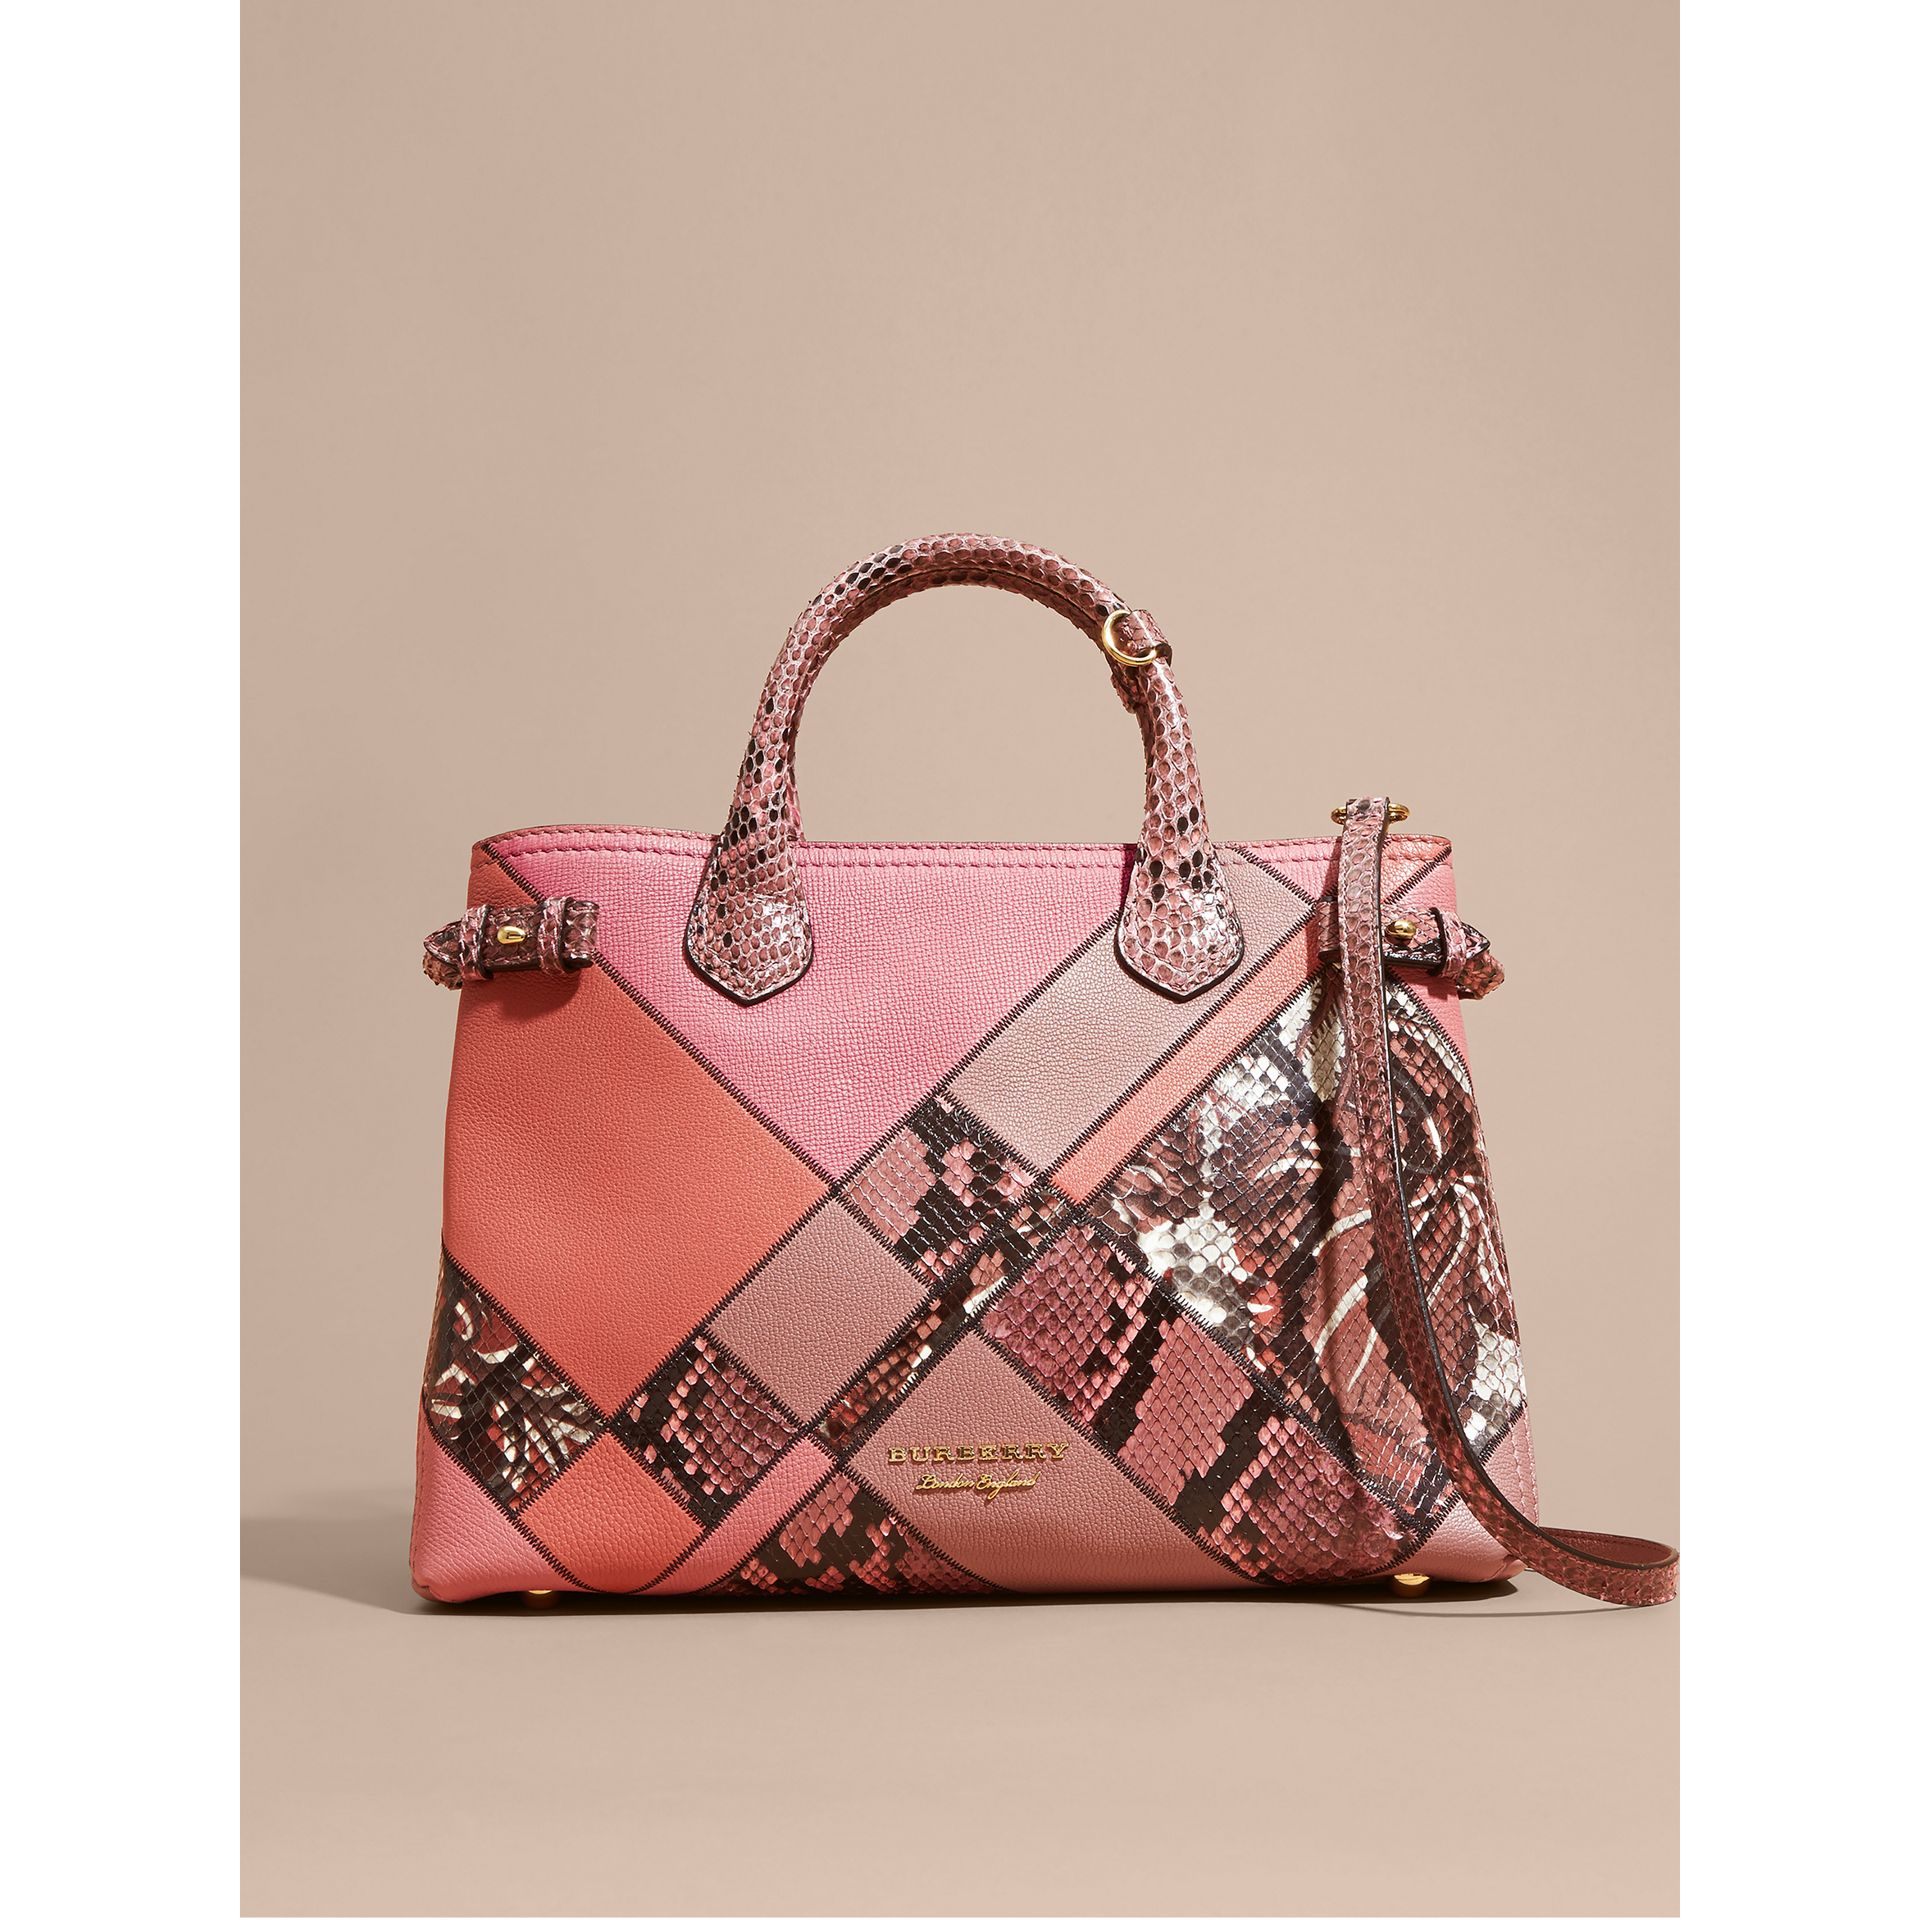 Sac The Banner medium en cuir et python façon patchwork (Rose Cendré) - Femme | Burberry Canada - photo de la galerie 7